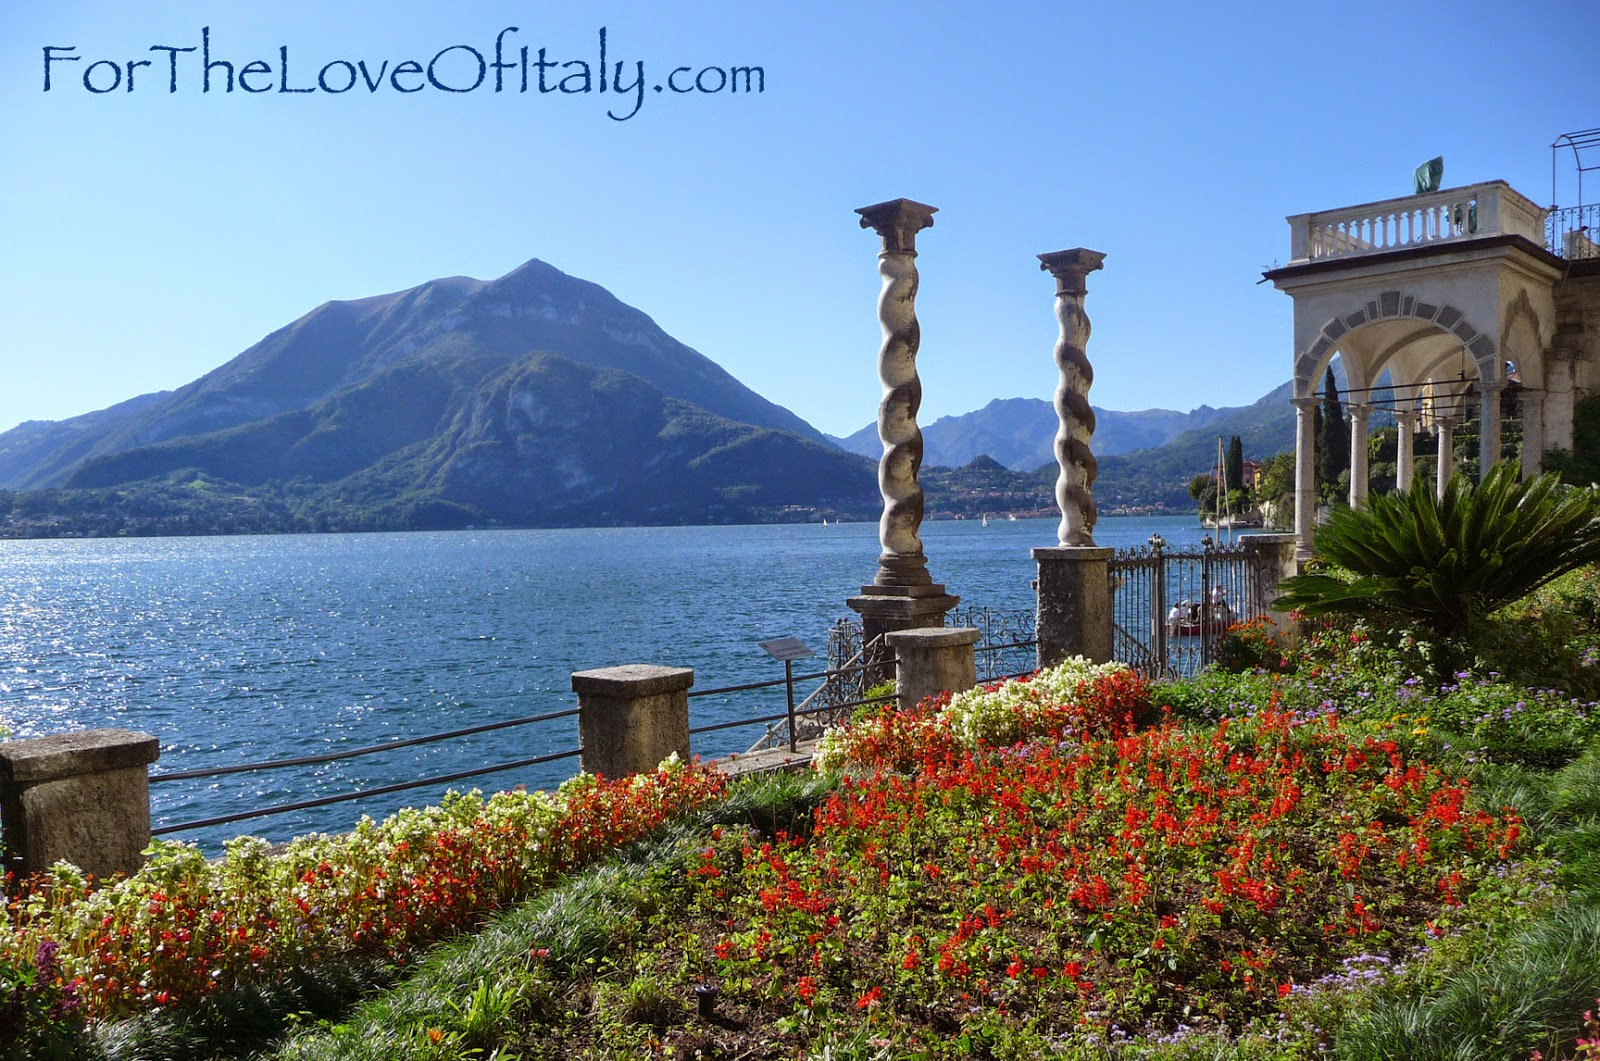 A Picture of Villa Monastero in Varenna, Italy (Lombardy) Lake Como, Italy © 2014 For The Love Of Italy